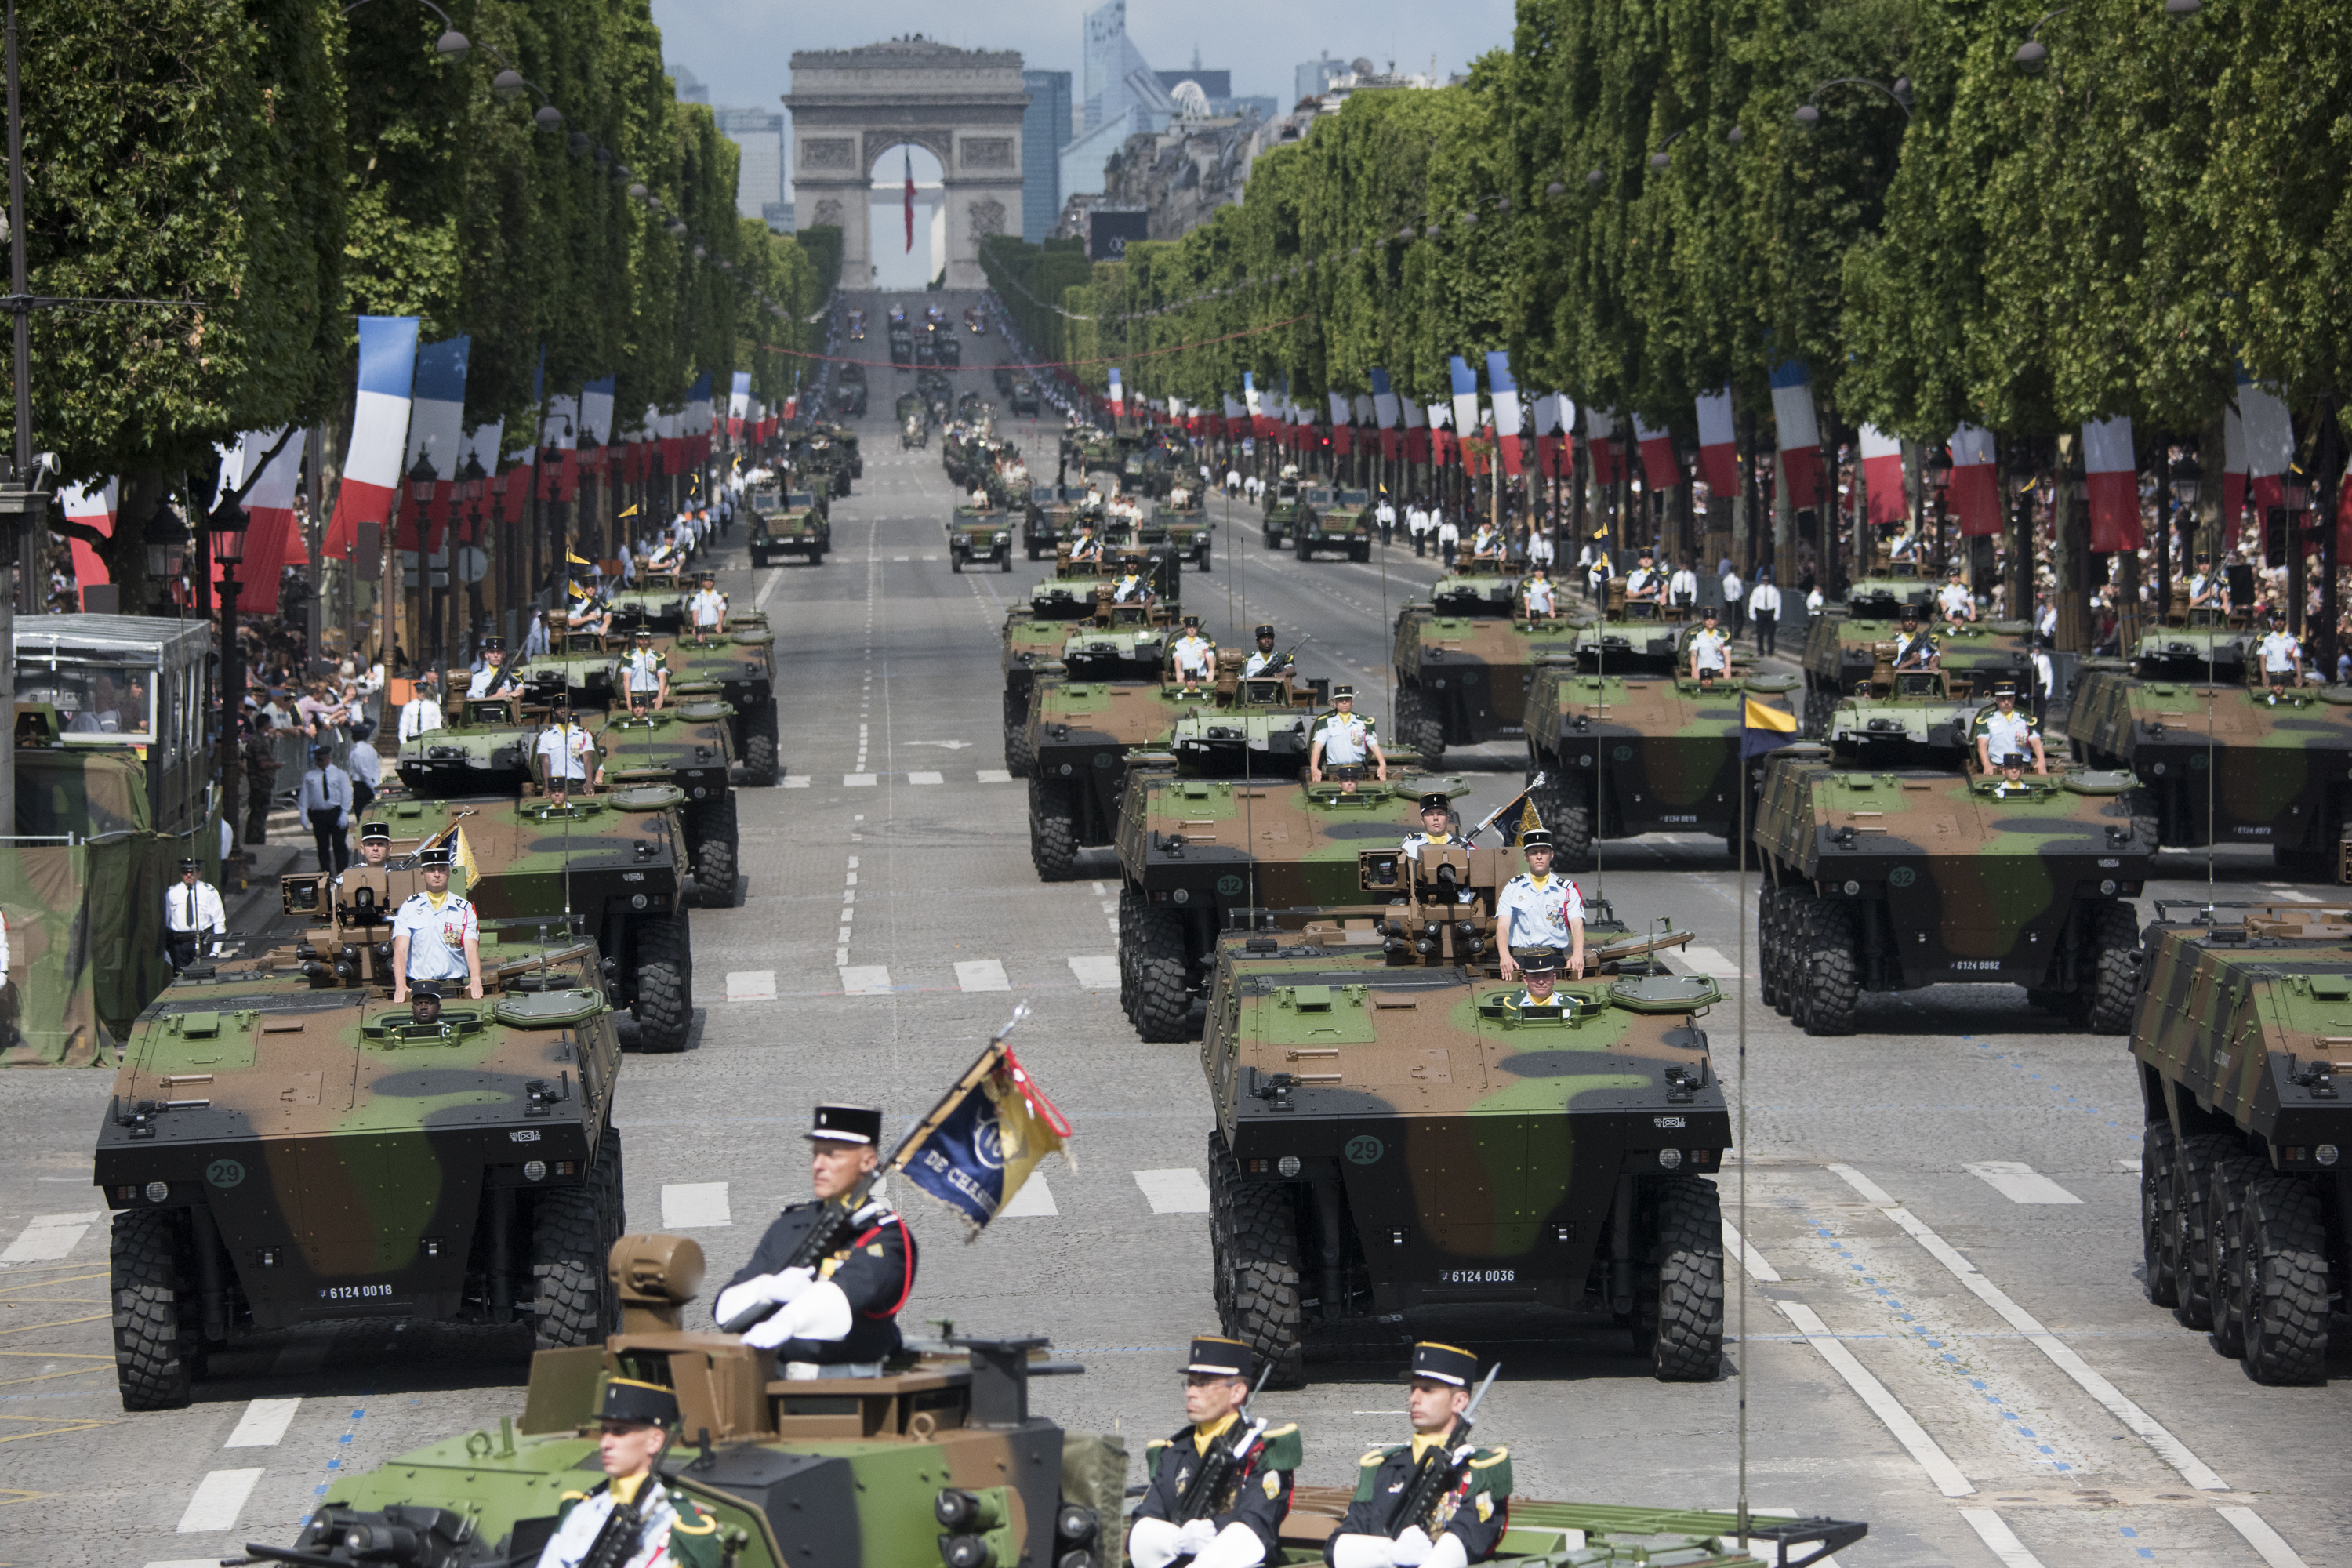 https://upload.wikimedia.org/wikipedia/commons/9/93/Bastille_Day_Parade_2017%2C_VBCI_of_the_16th_battalion_of_chasseurs.jpg